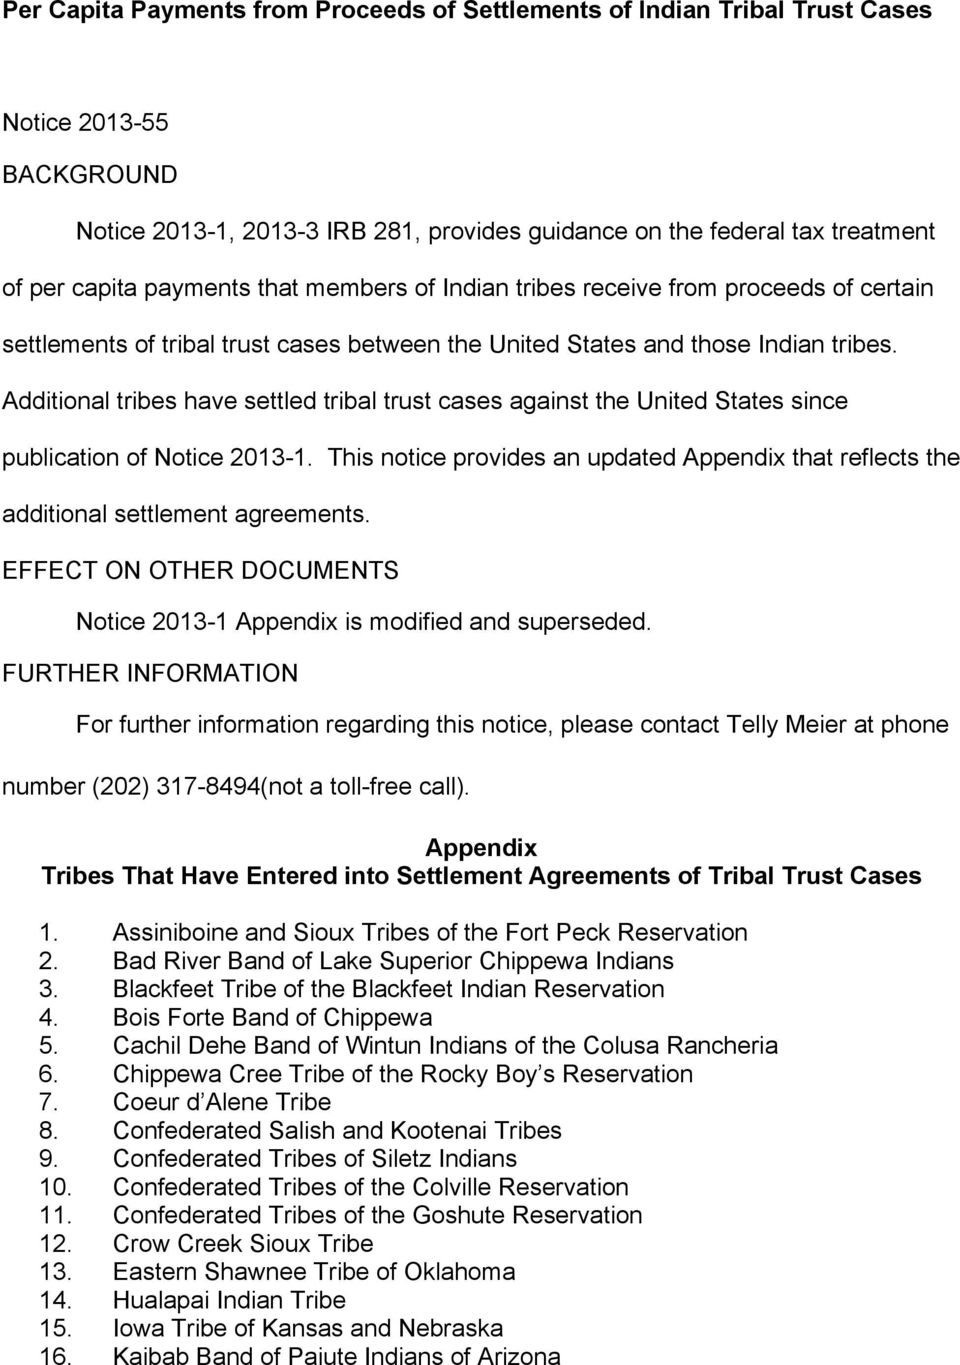 Tribal Trust Fund Settlement Payments Pdf